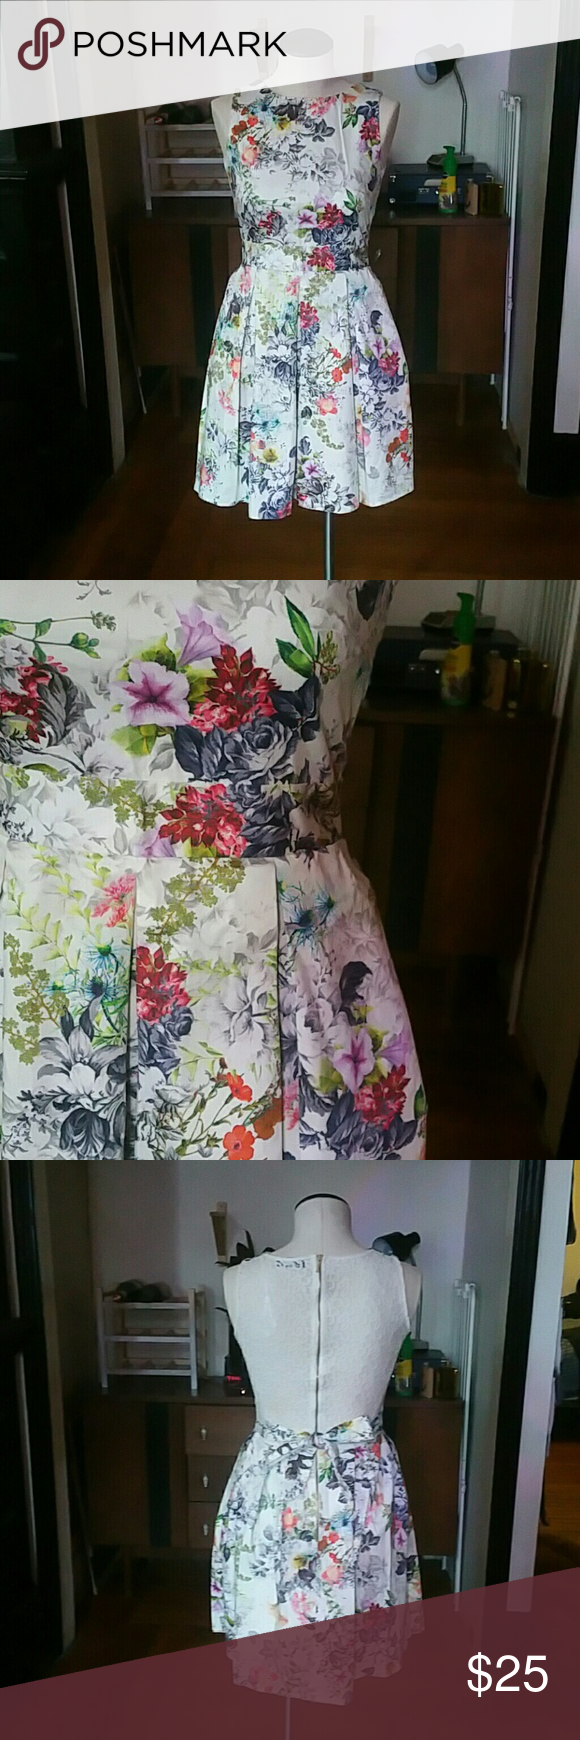 """Closet London Floral Fit and Flare Dress Adorable Closet London Dress originally from ModCloth. Has a lace back that would look adorable with a button down layered underneath. Unlined but I had no issue with sheer. Large pleats in skirt. 8 UK fits like a 4 US.  97% cotton 3% elastane, lace is 80% cotton and 20% nylon.  Length is 33"""" from shoulder seam to hem. Bust is 31"""". Waist is 25"""". Hips are 38"""". Closet Dresses Mini"""